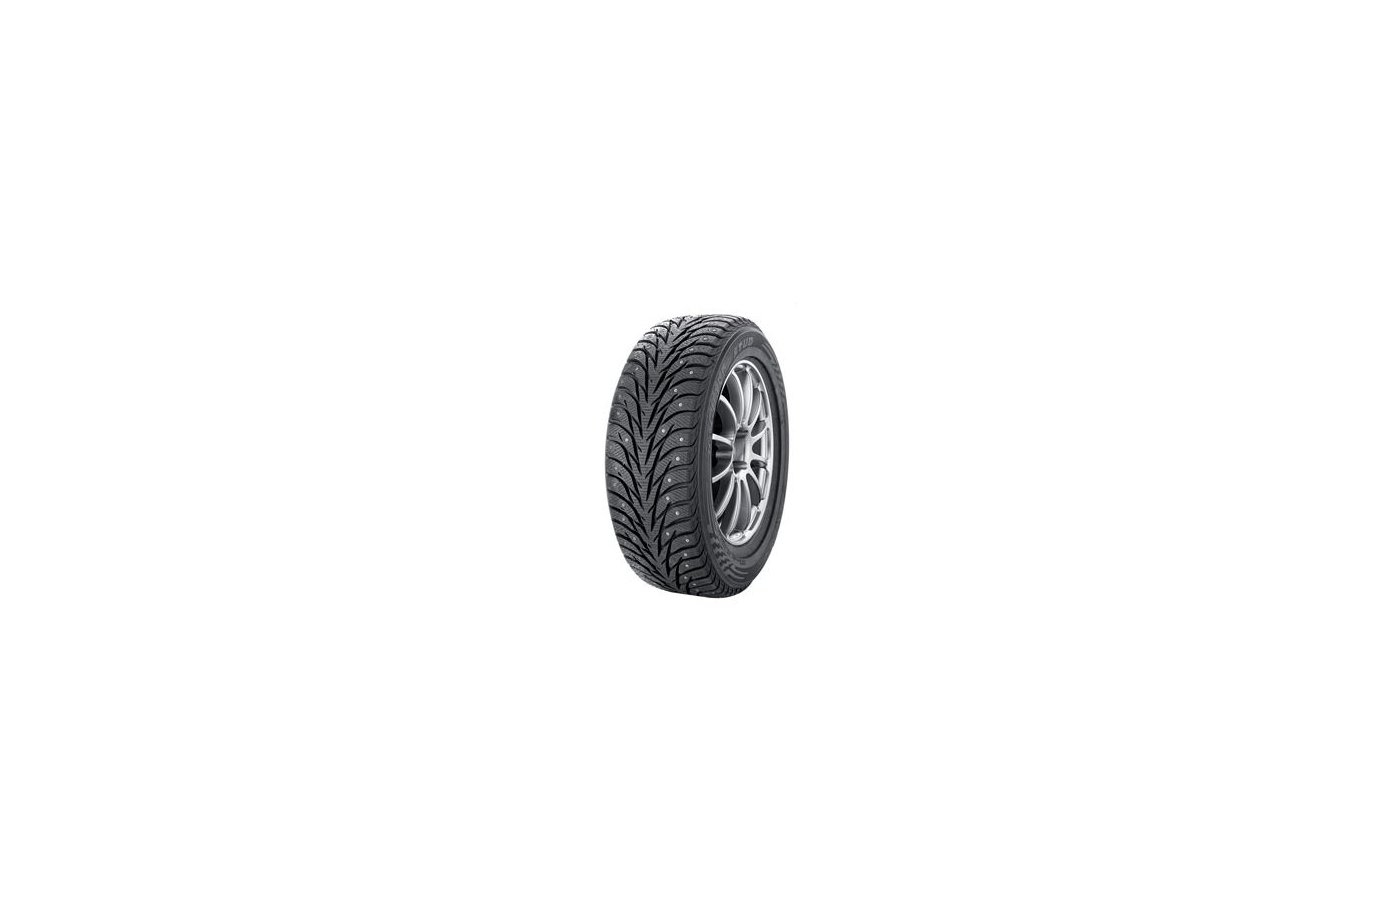 Шина Yokohama Ice Guard IG35 Plus 225/65 R17 TL 102T шип